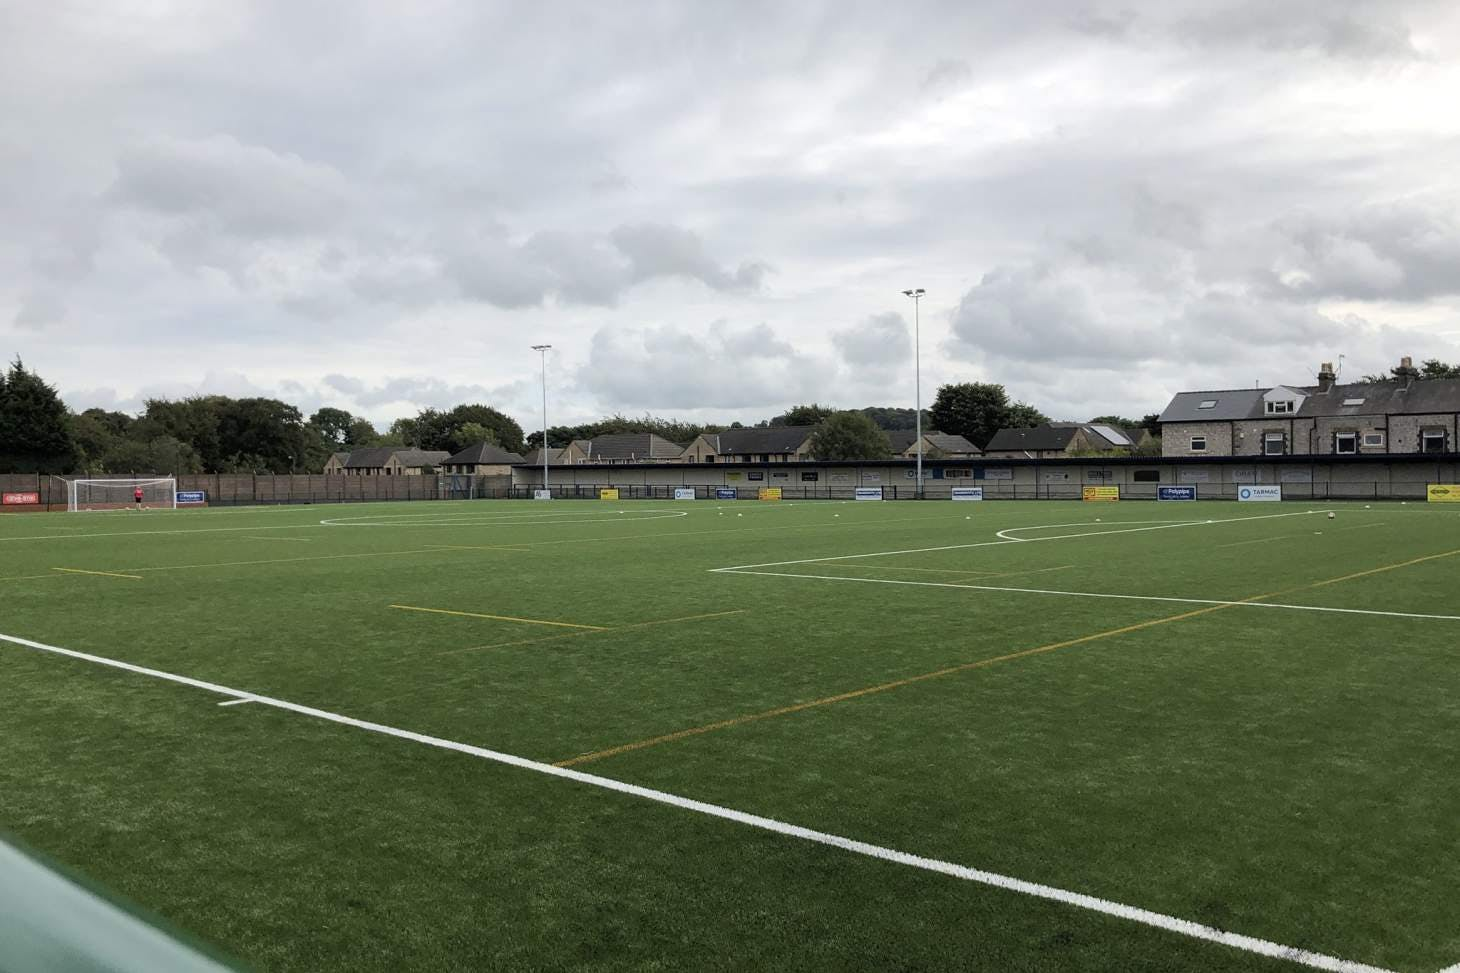 Buxton FC 7 a side | 3G Astroturf football pitch